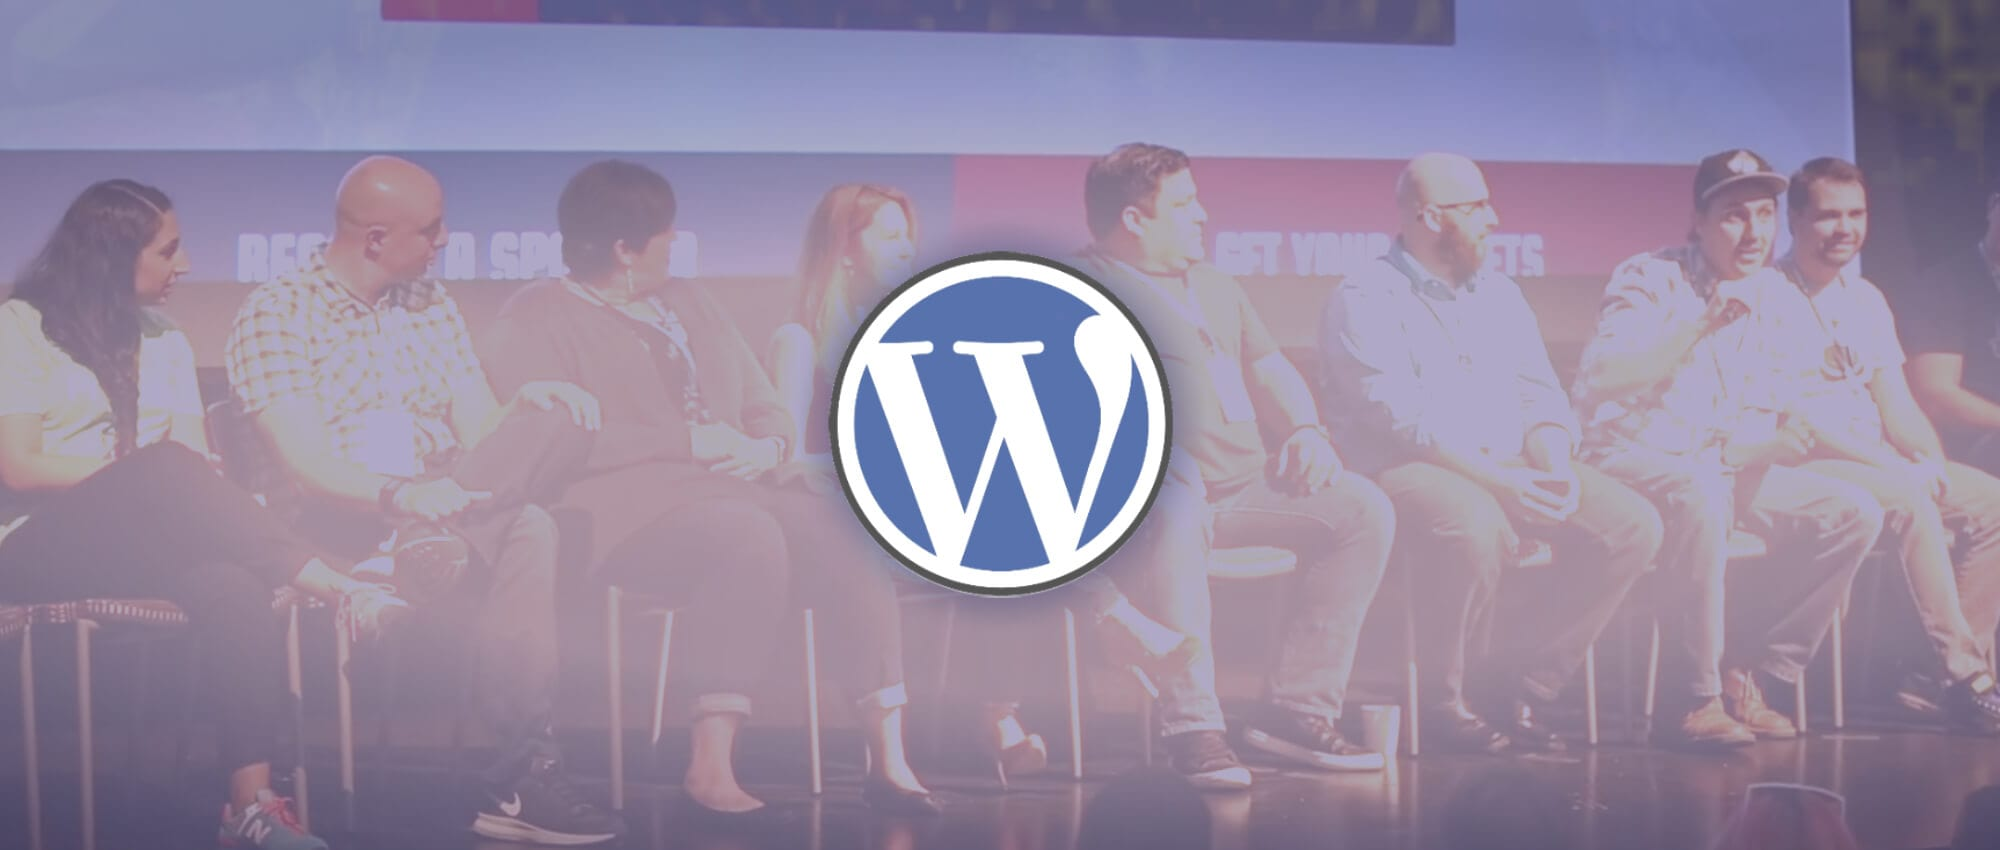 The panel discussion from WordCamp San Antonio 2017.